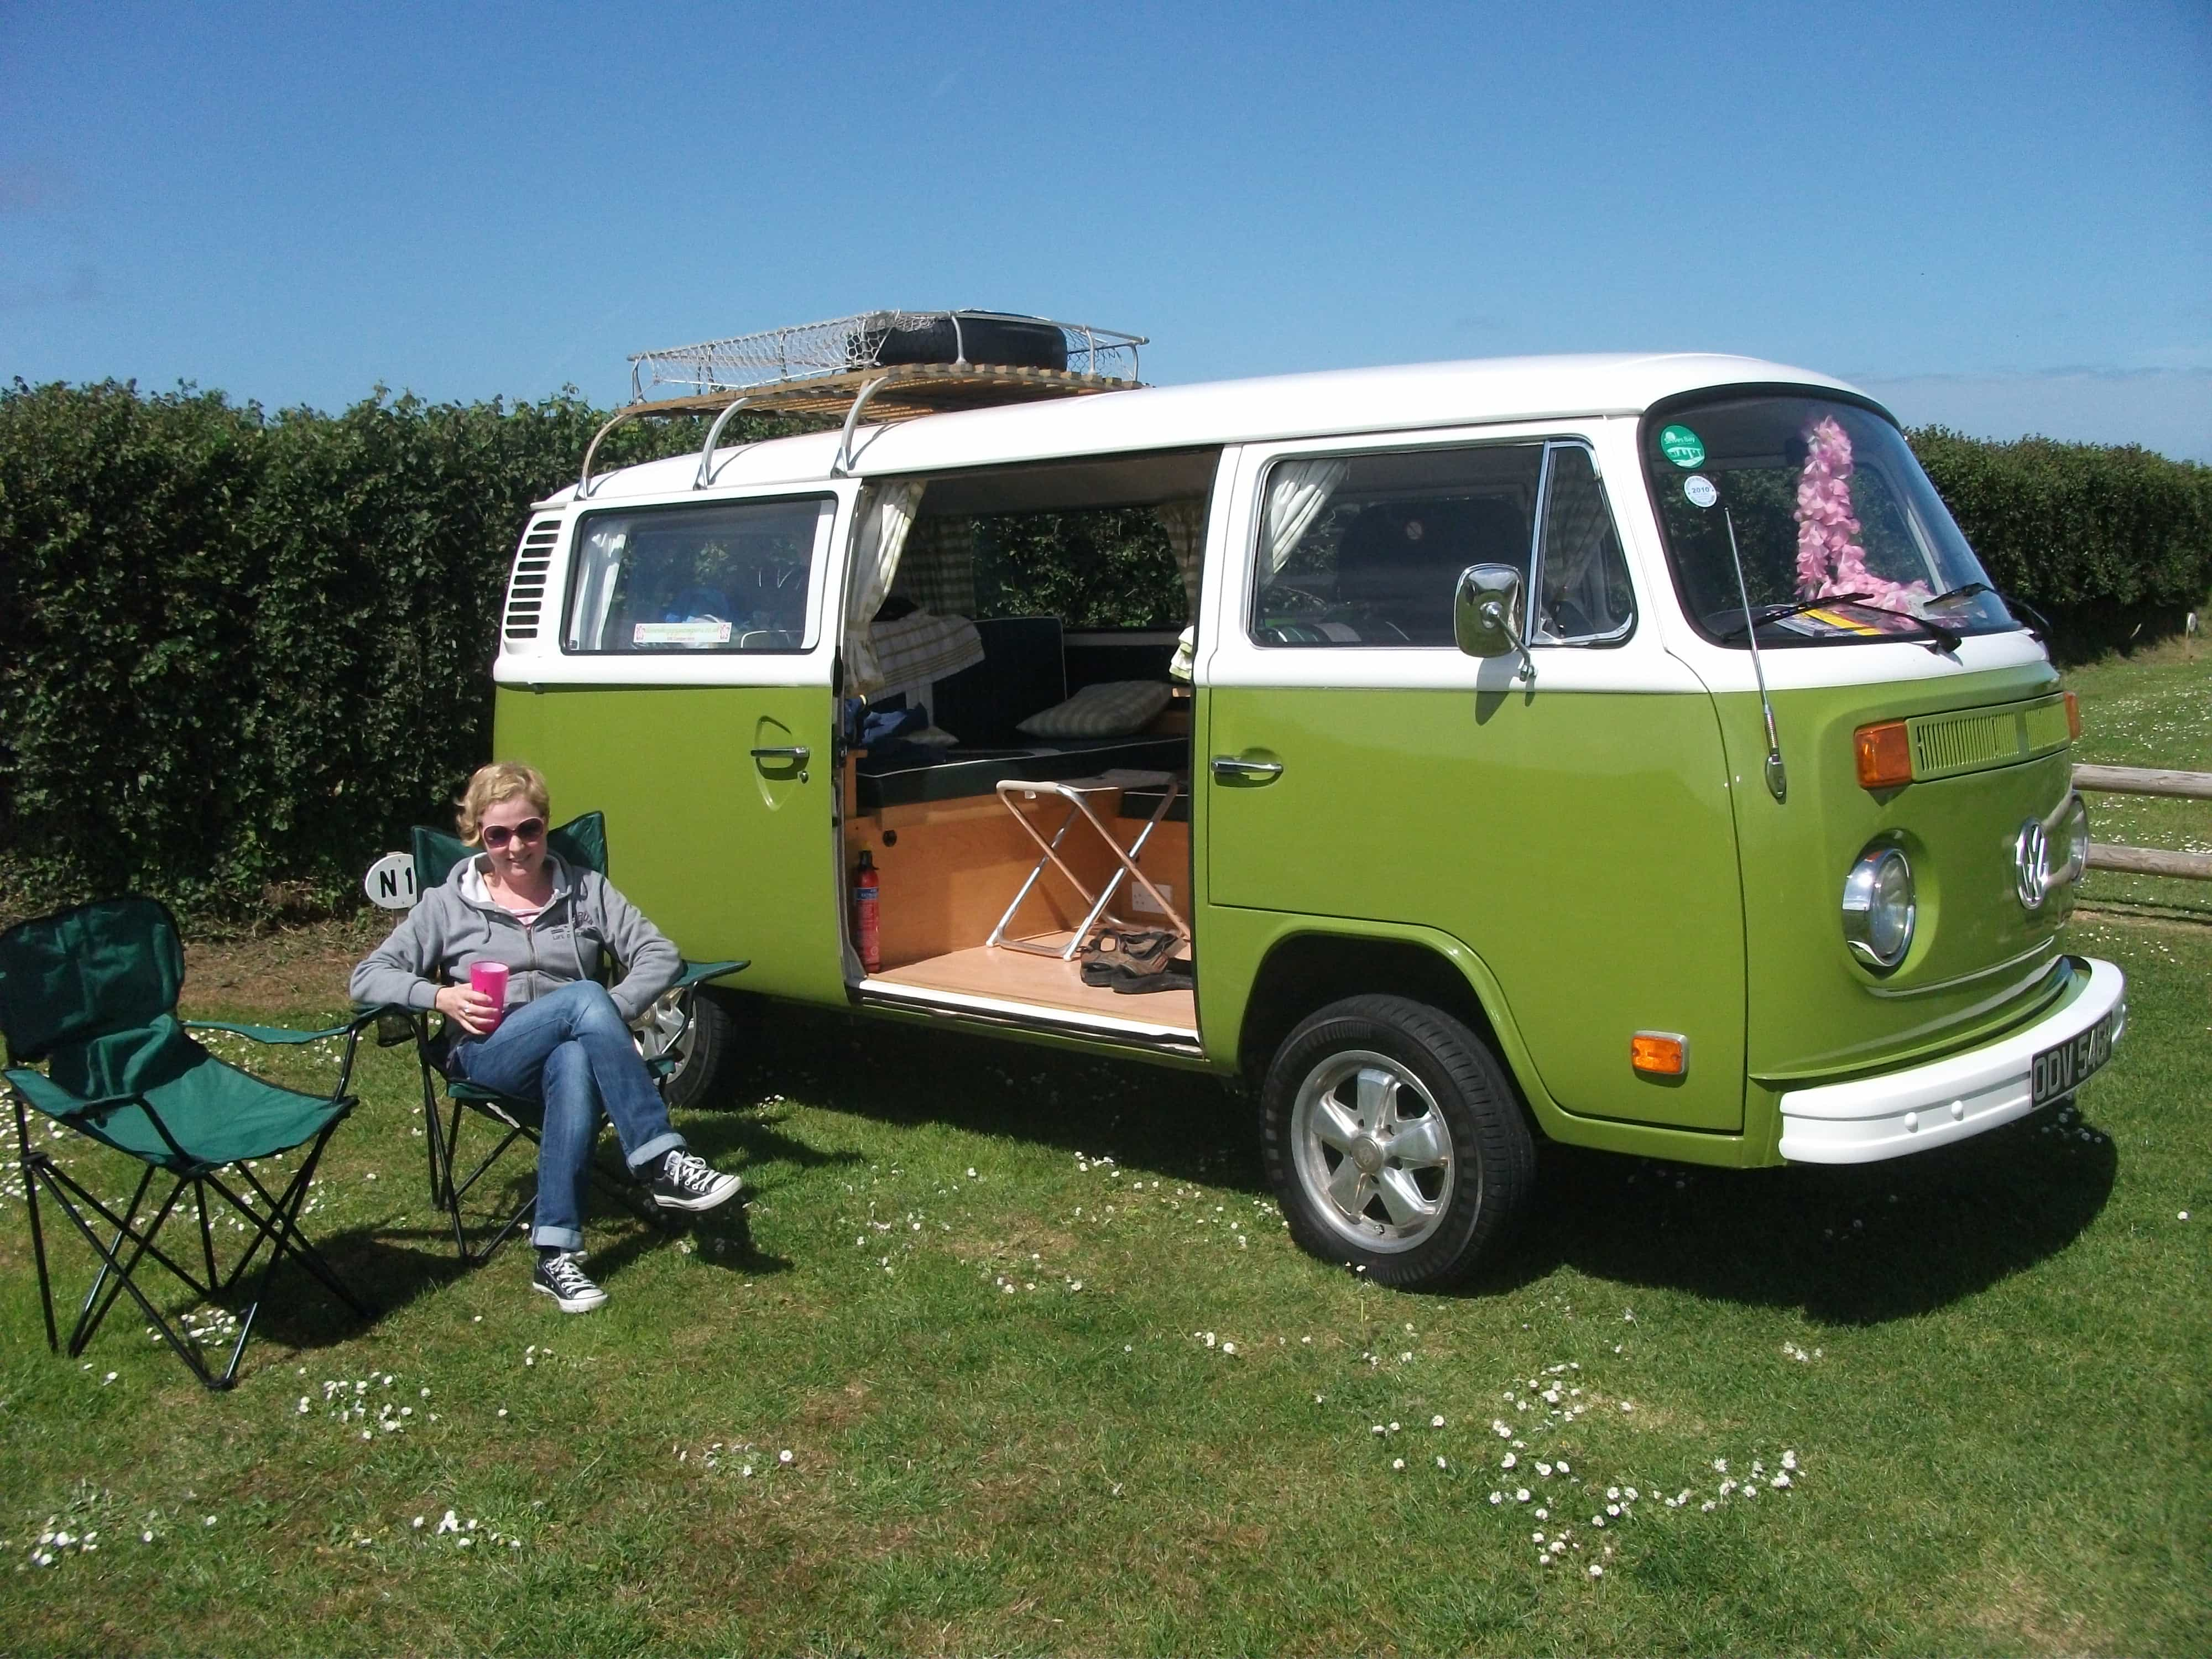 practitioner on her summer holidays sitting on a camping chair beside a 1970's VW Campervan